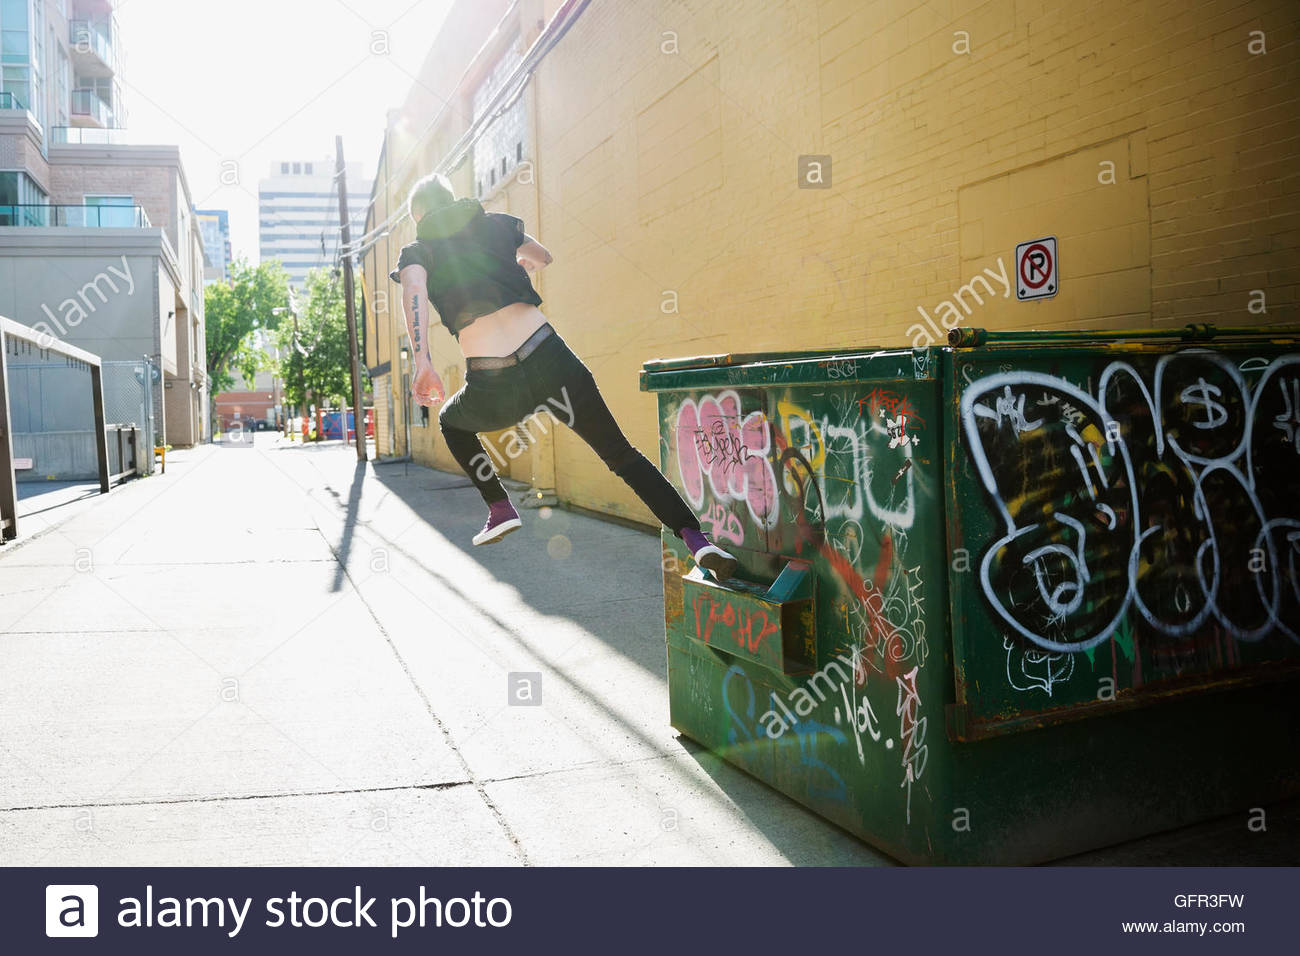 Cool young woman doing parkour at dumpster in sunny urban alley - Stock Image